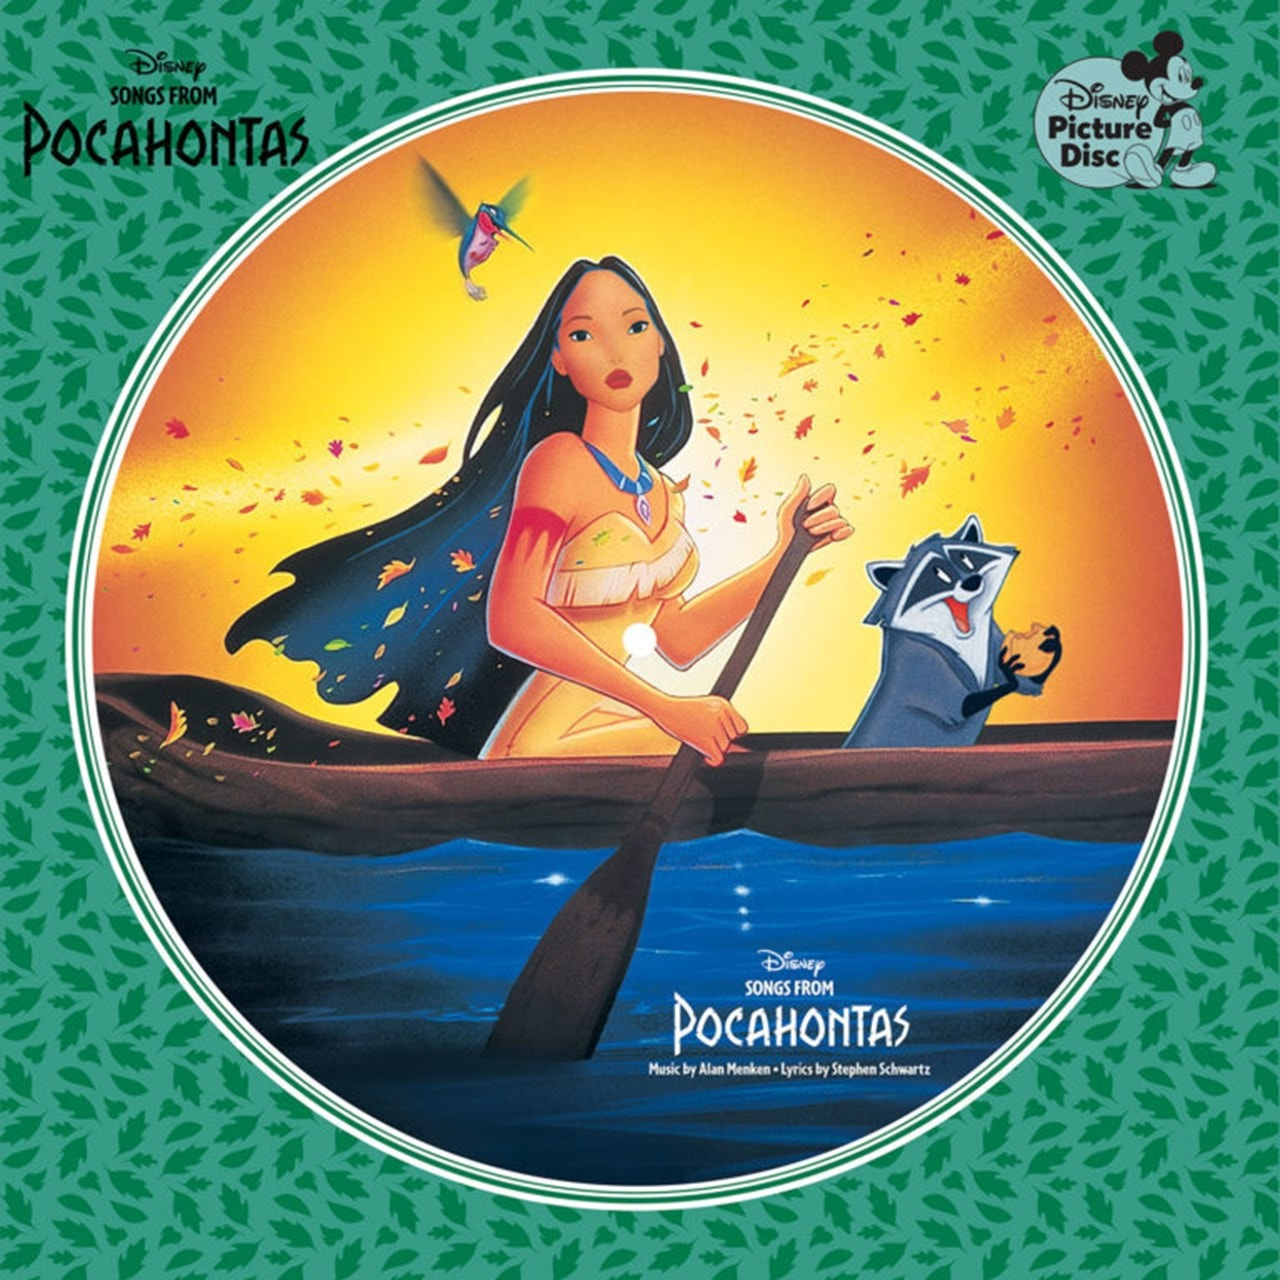 Songs from Pocahontas - 1